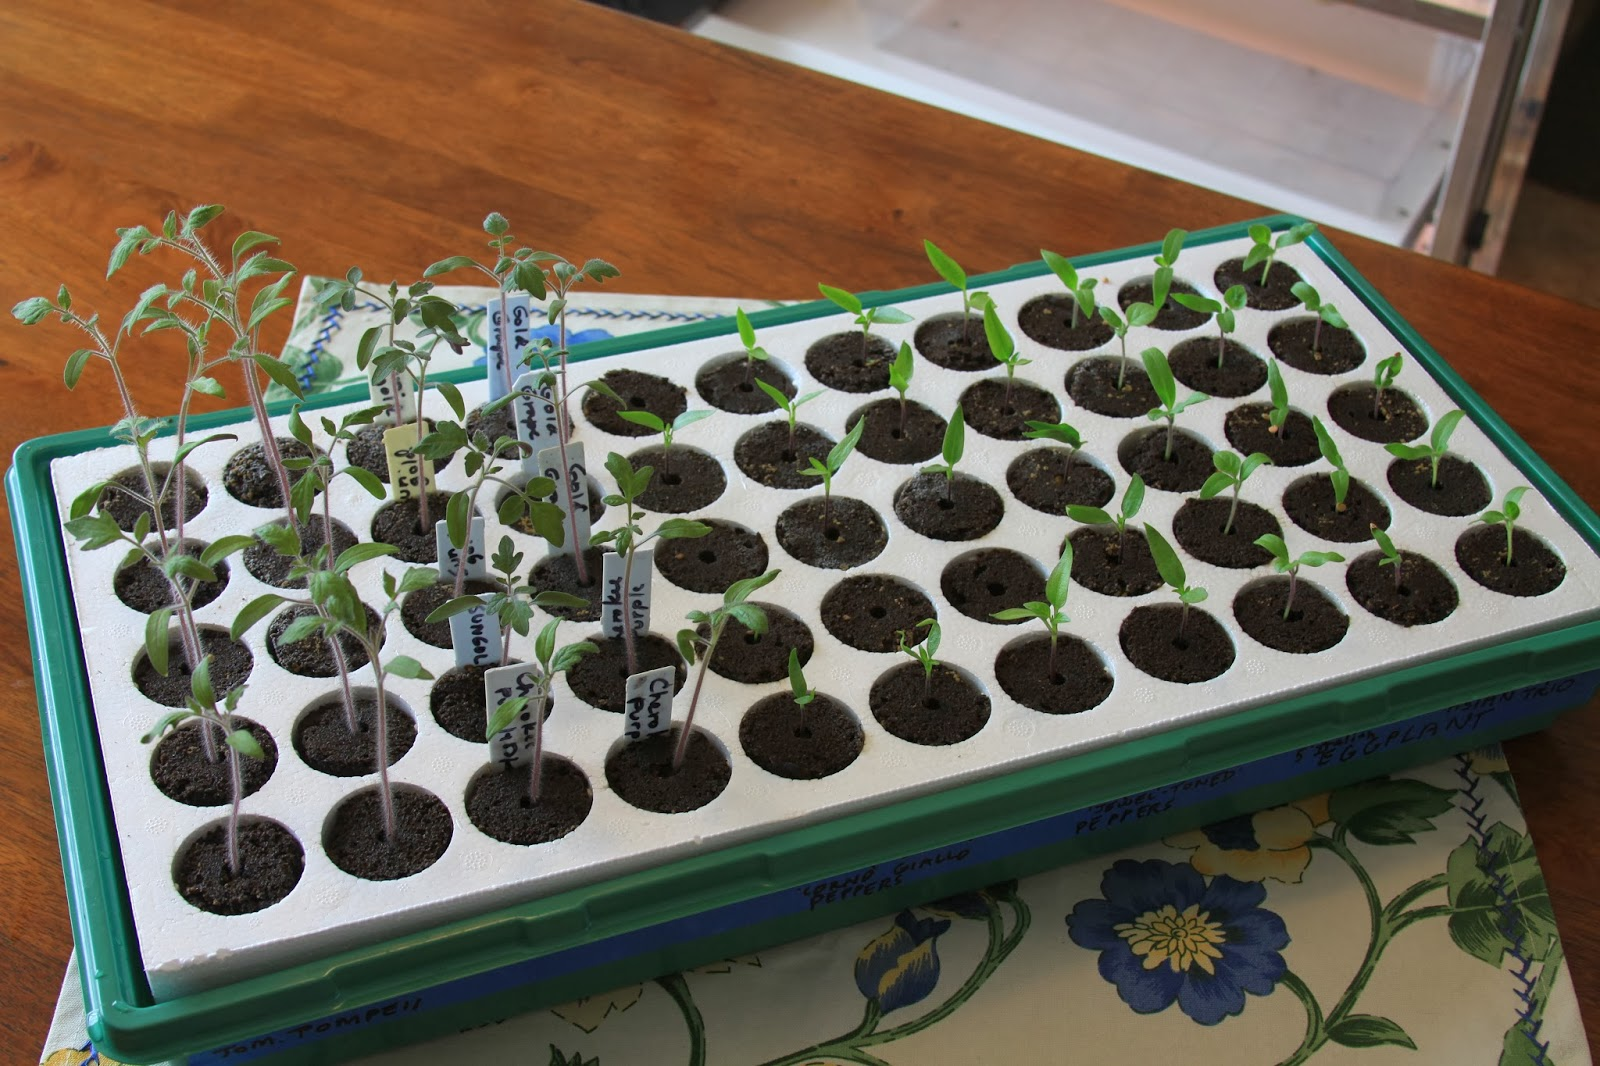 seed-starting kits, All-Roots